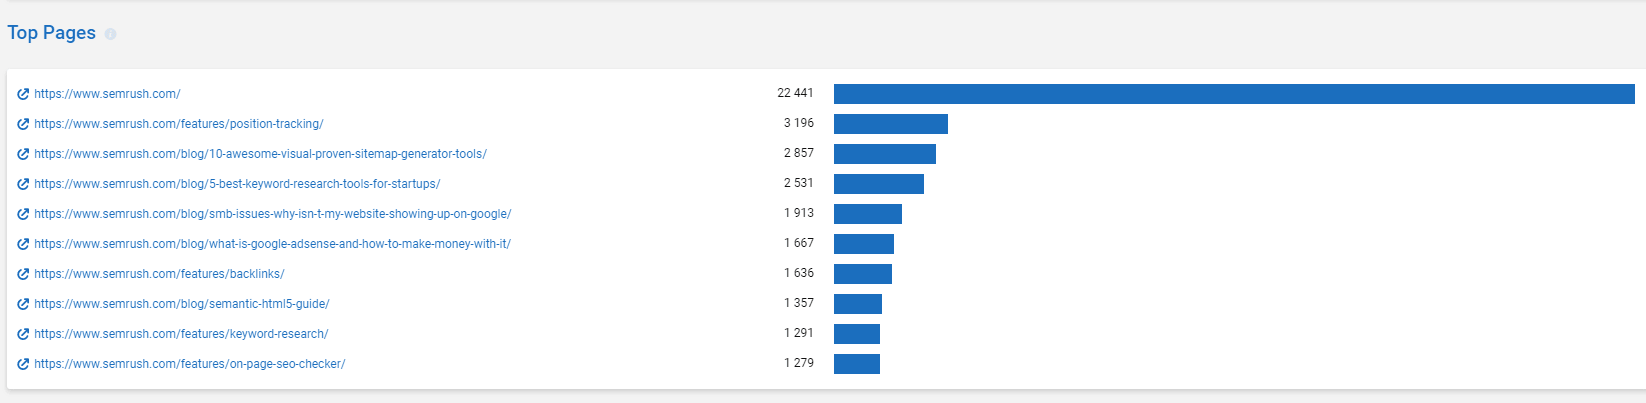 Top pages from a domain